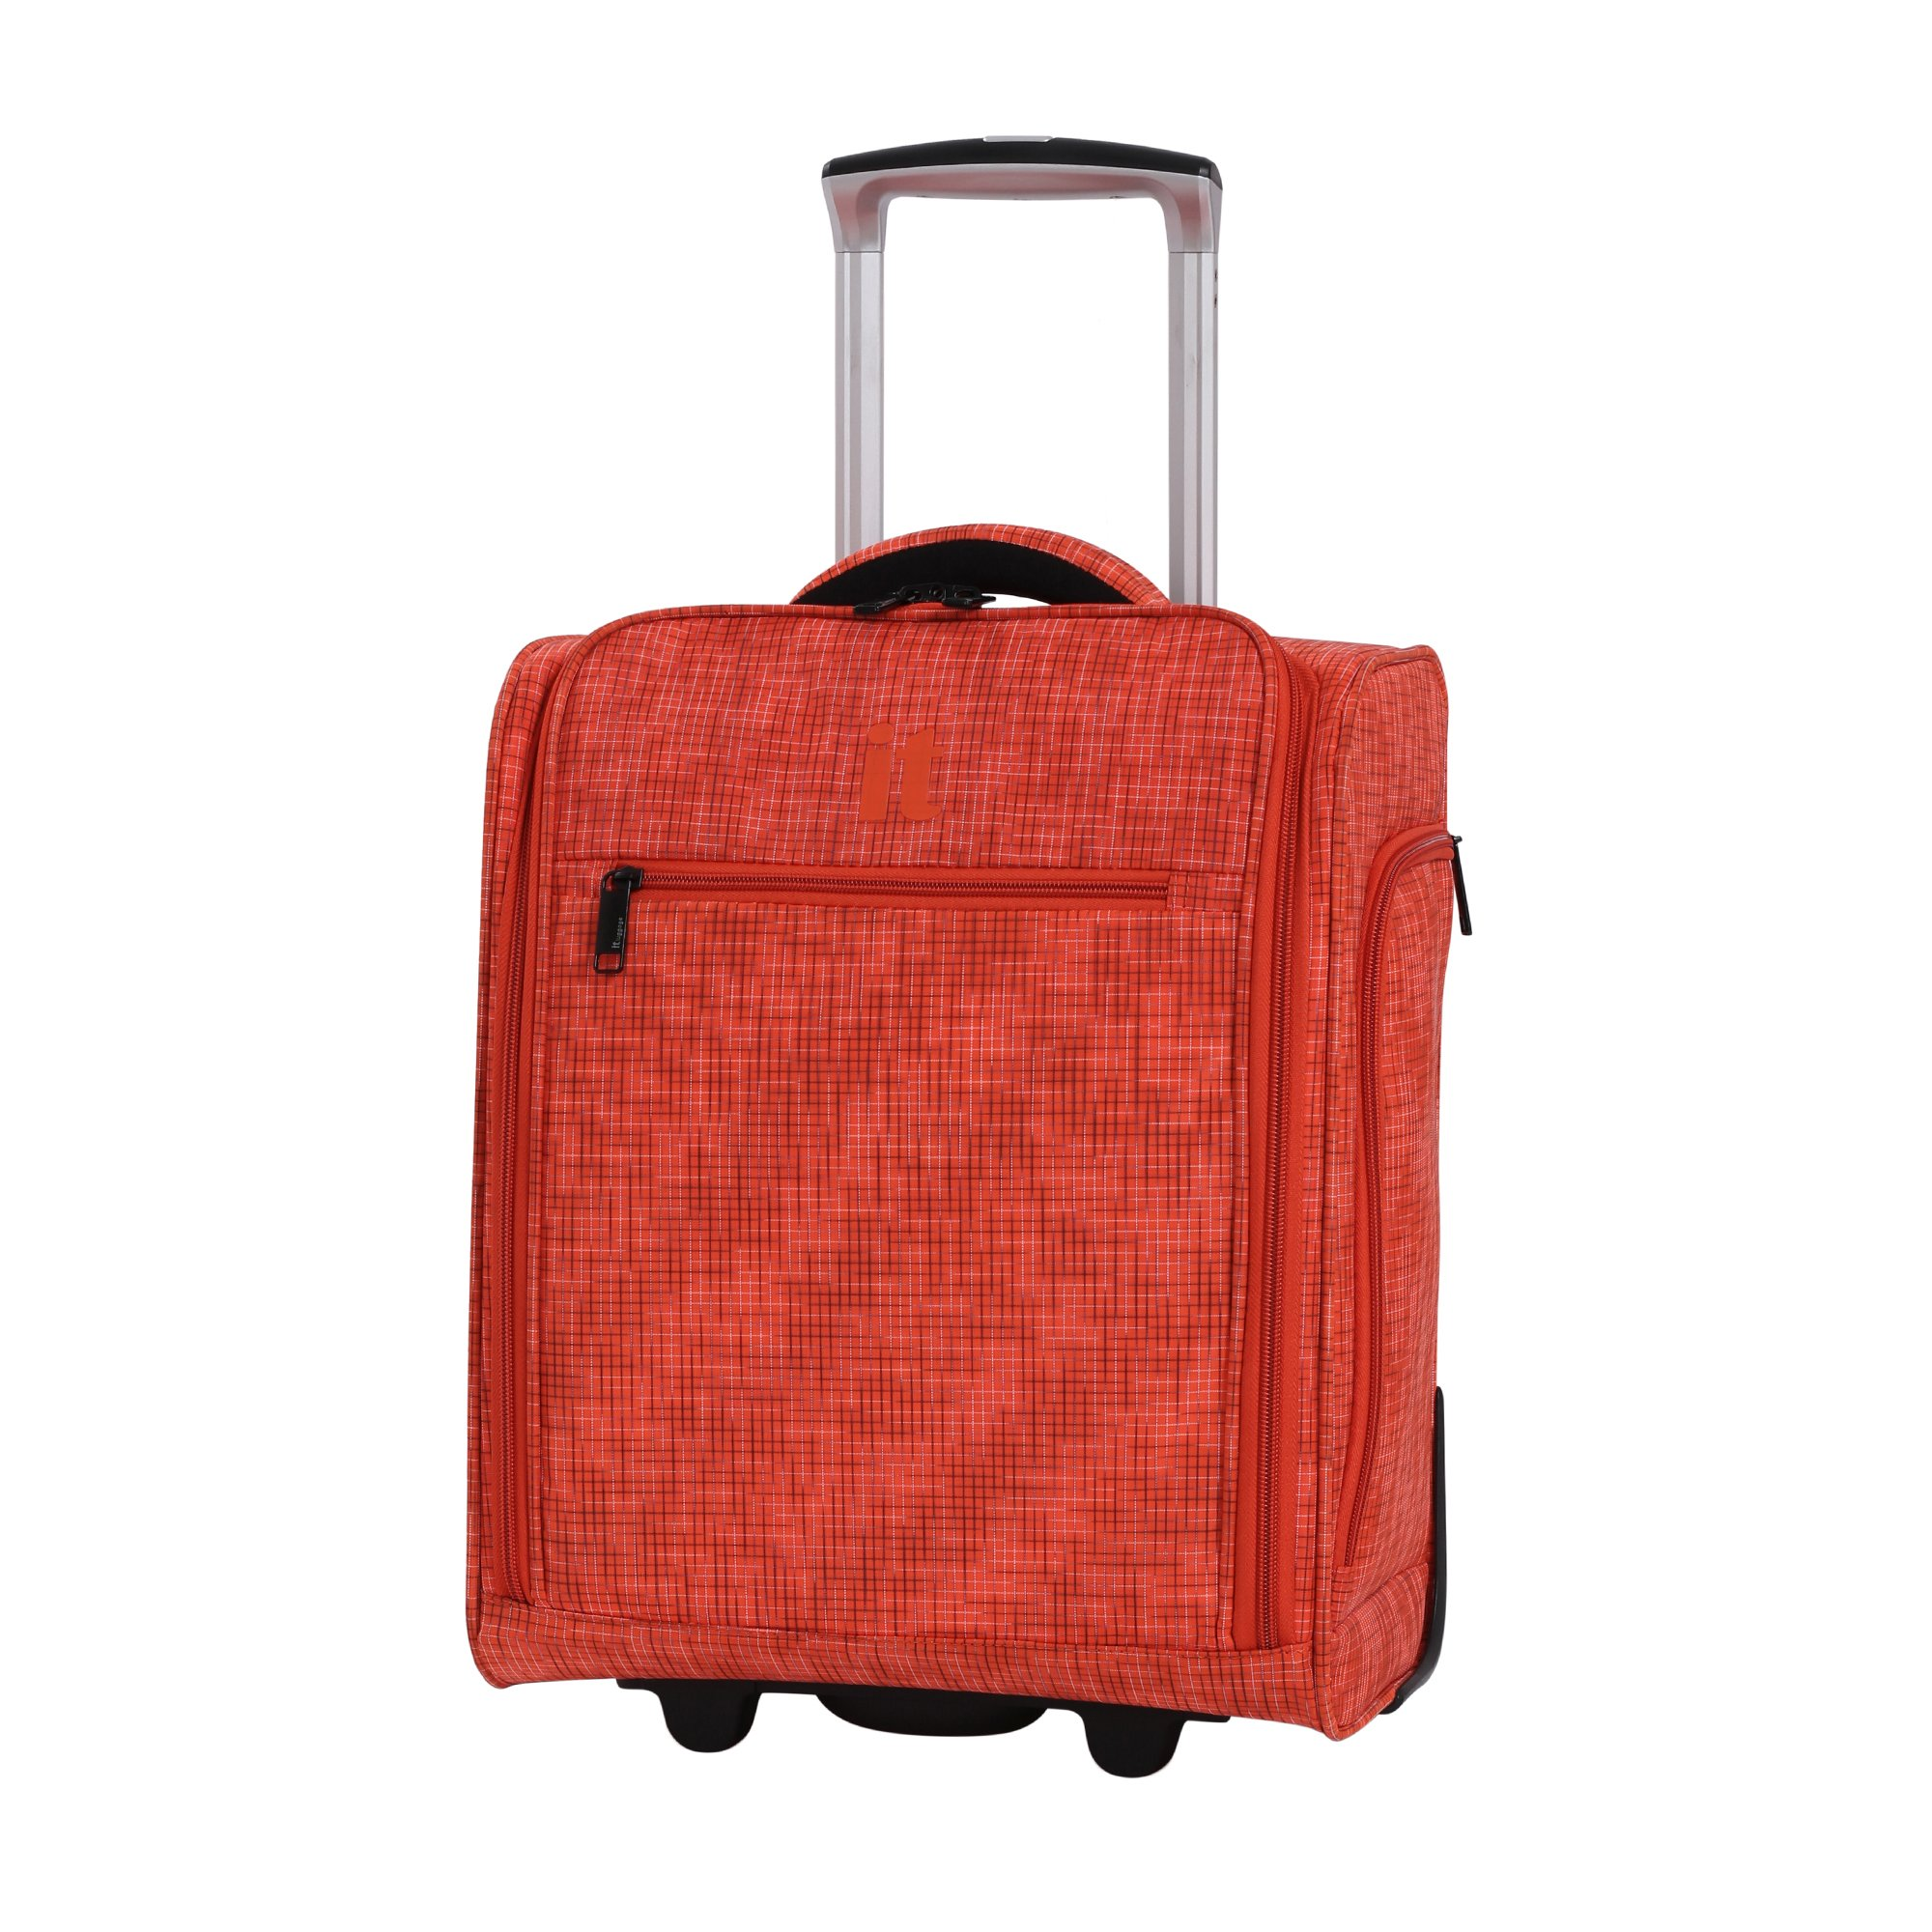 luggage Stitched Squares Lightweight Underseat